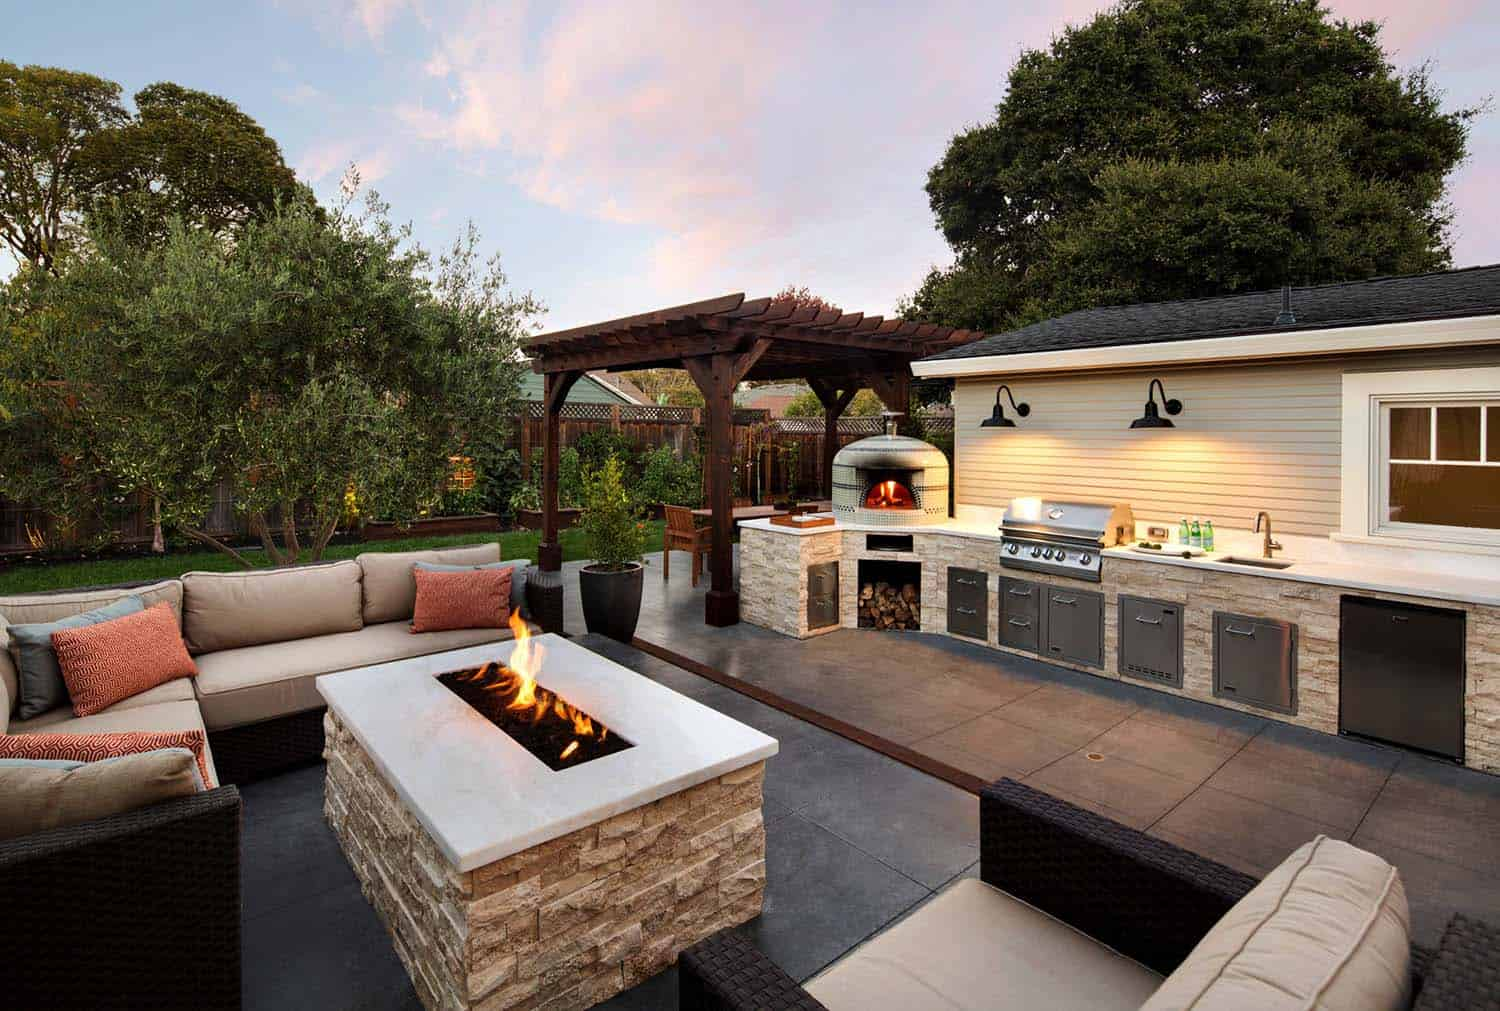 35 Brilliant and inspiring patio ideas for outdoor living ... on Small Backyard Entertainment Area Ideas id=52782